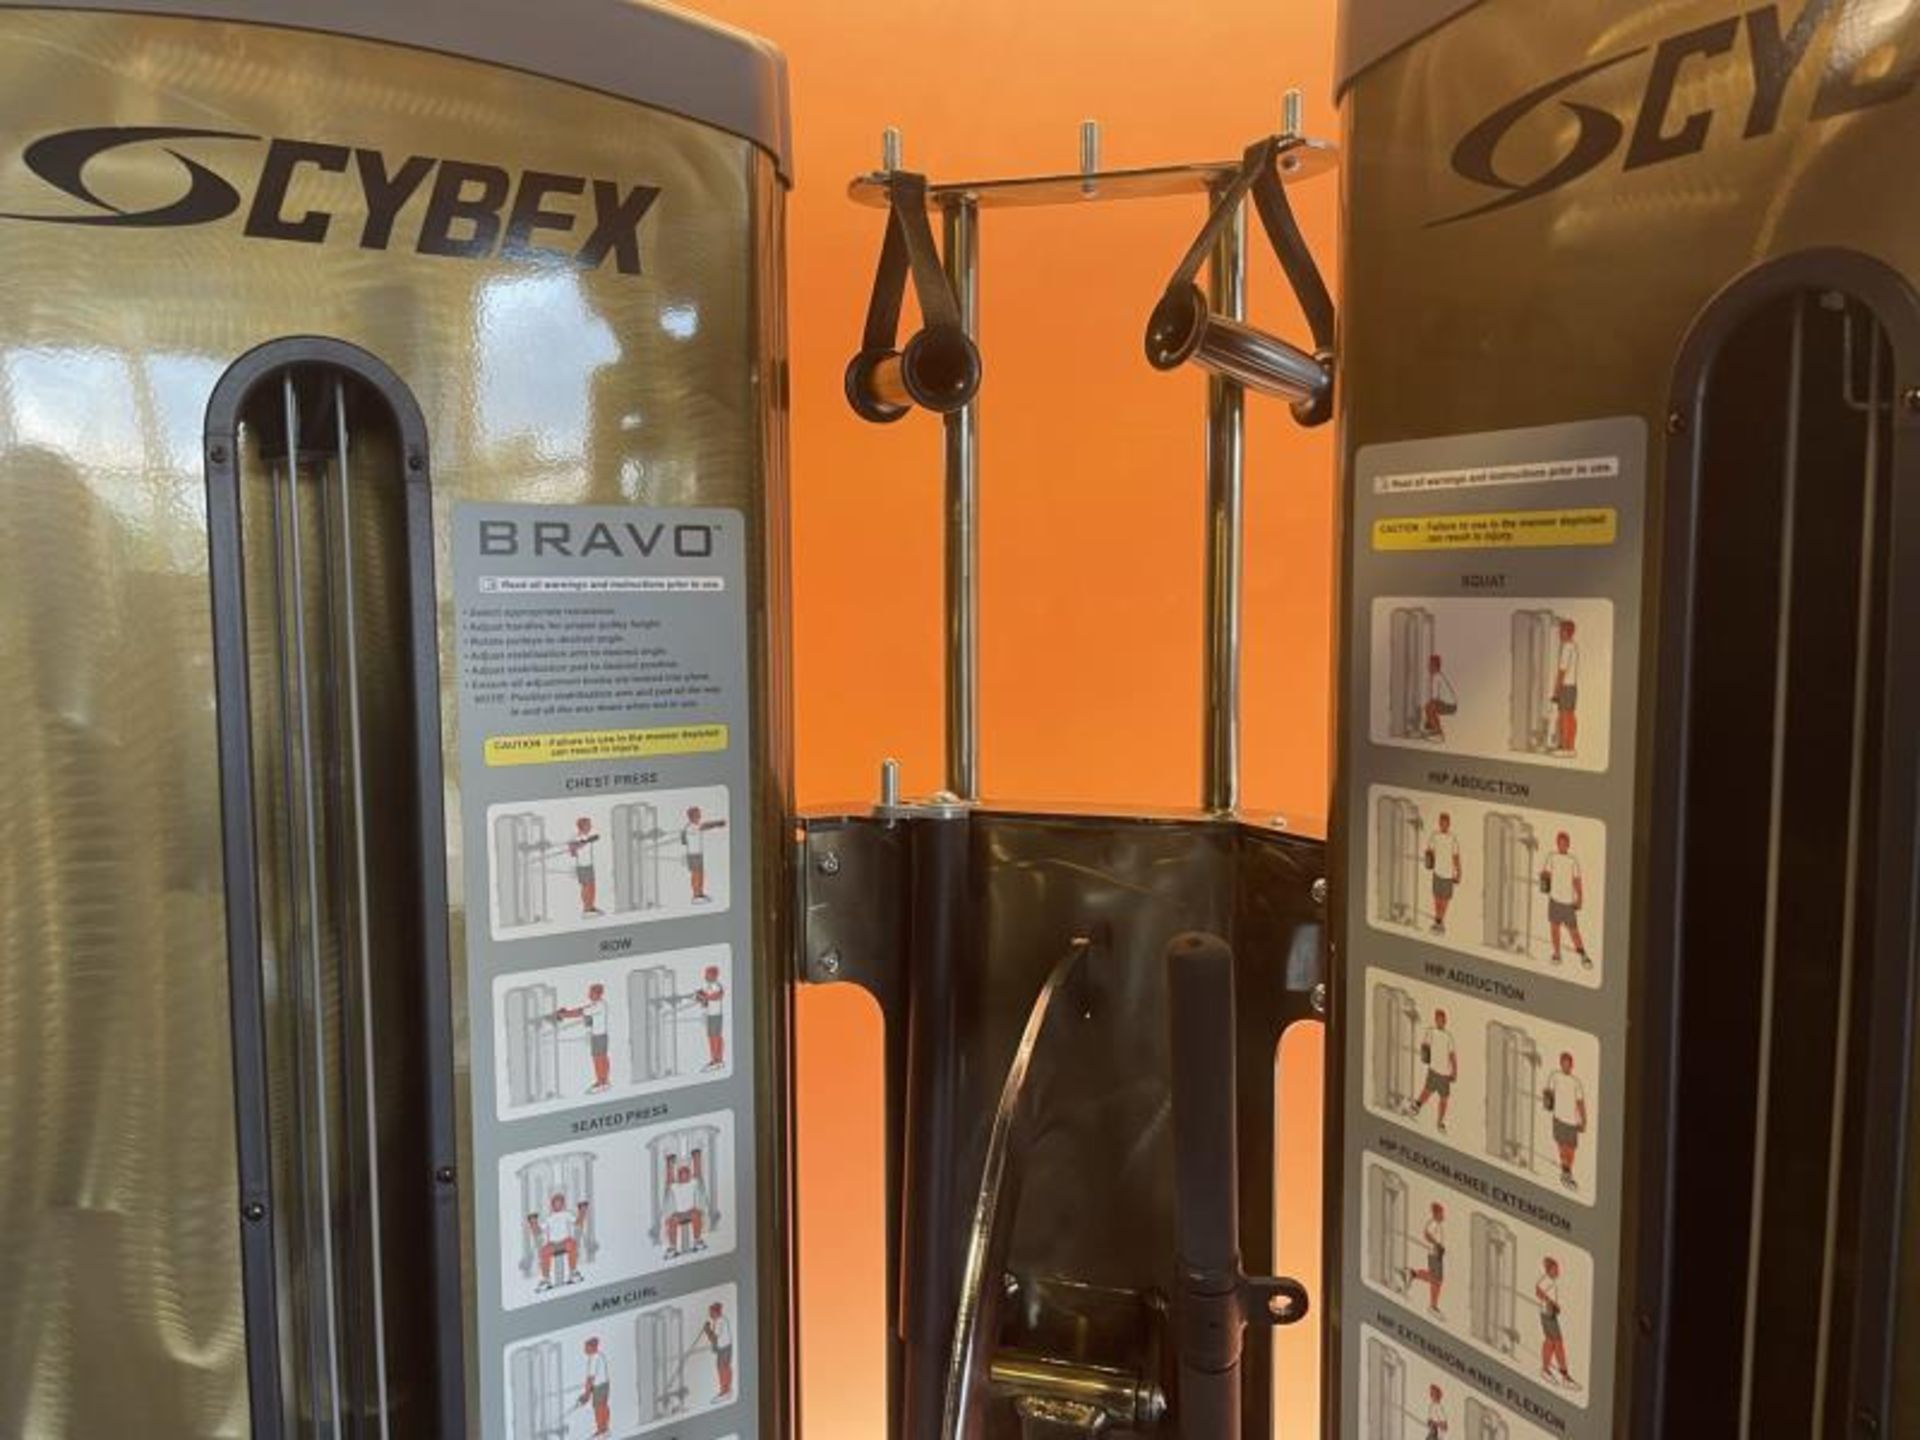 Cybex Bravo All-In-One Functional Trainer M: 8830 - Image 2 of 4